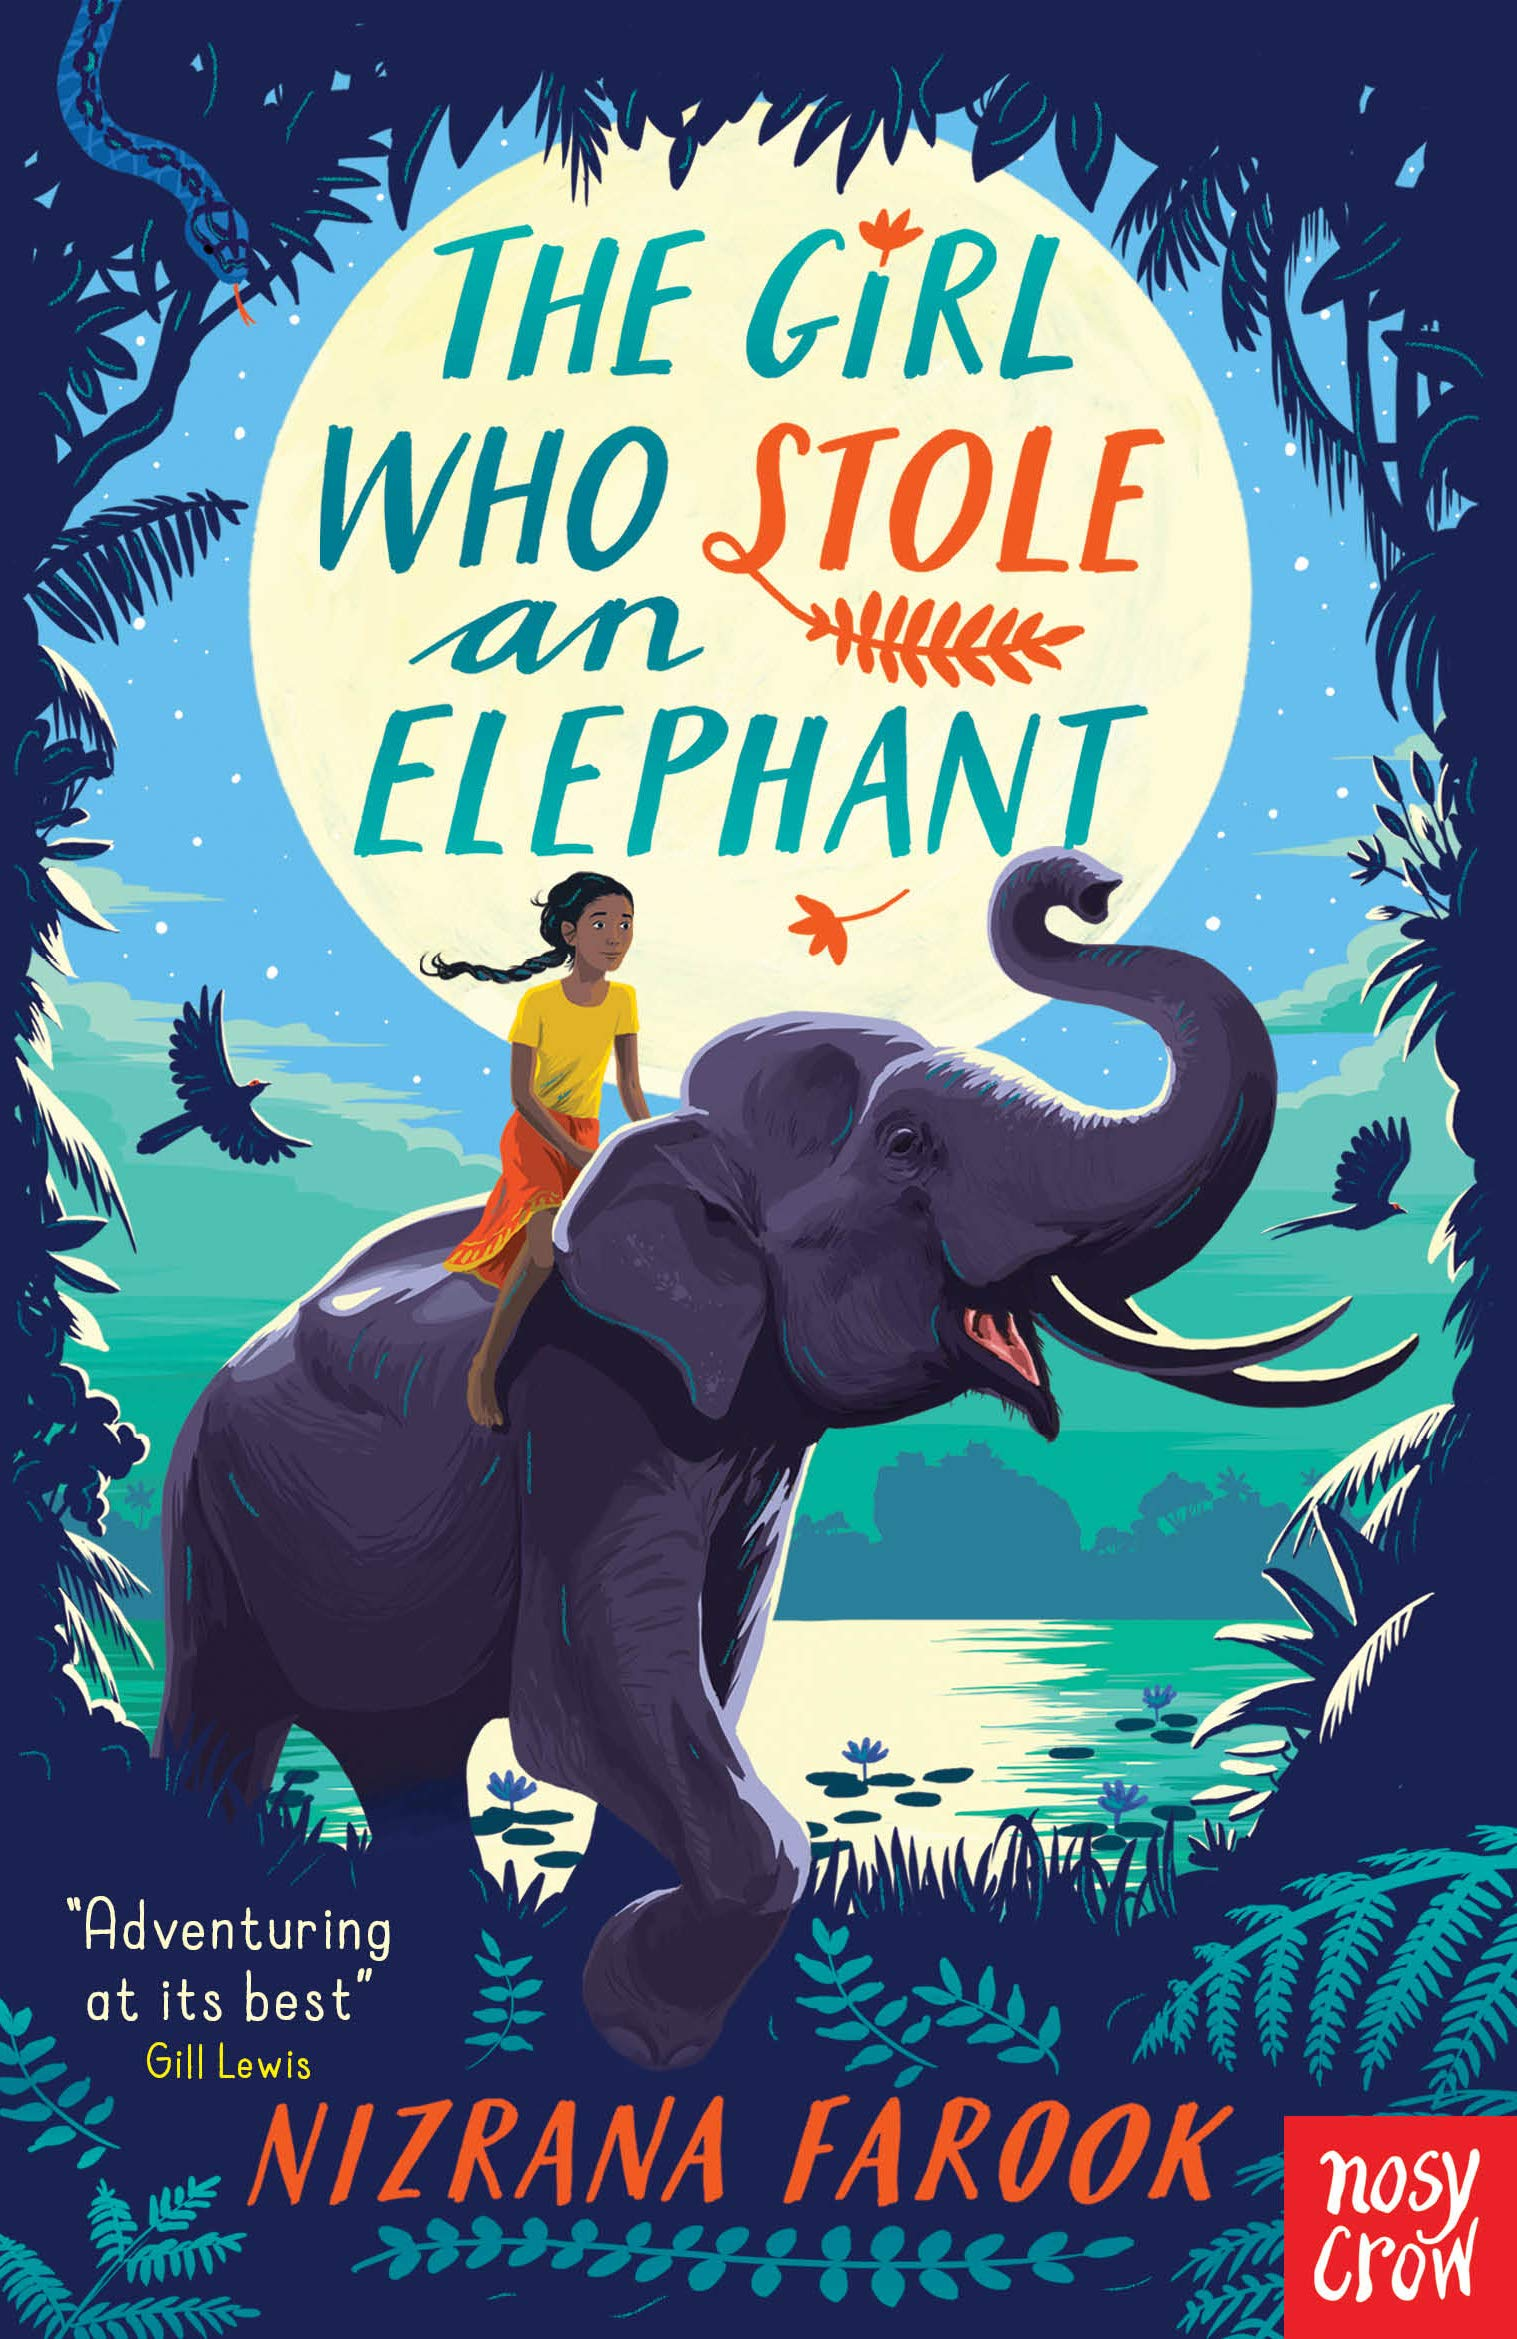 The Girl Who Stole an Elephant: Amazon.co.uk: Nizrana Farook:  9781788006347: Books